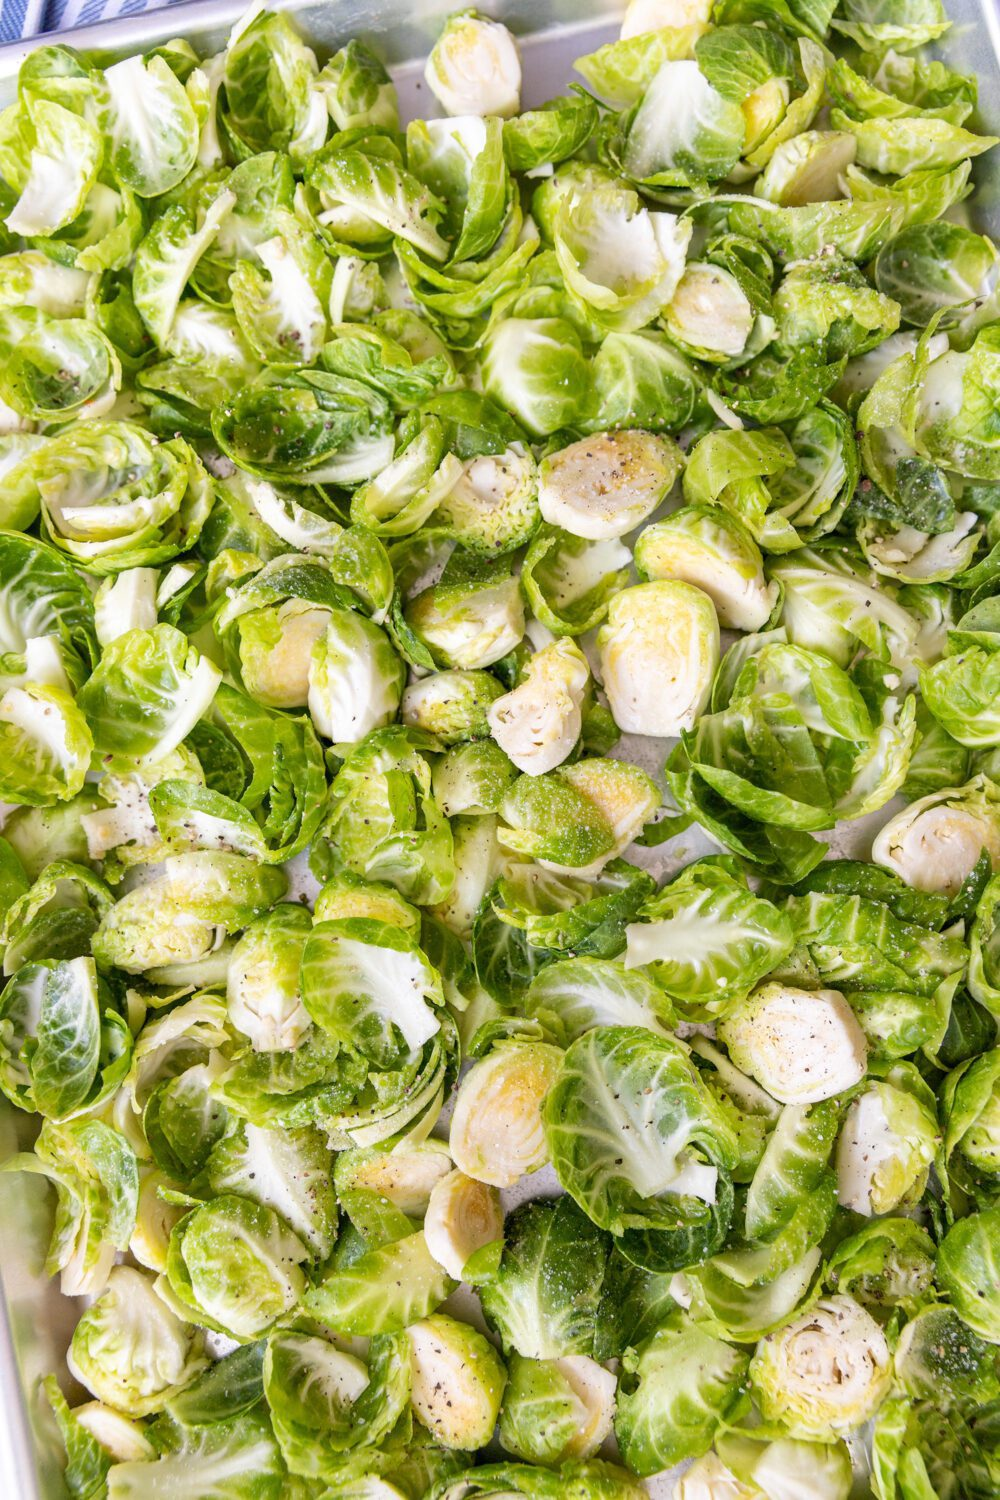 baking sheet full of brussel sprouts